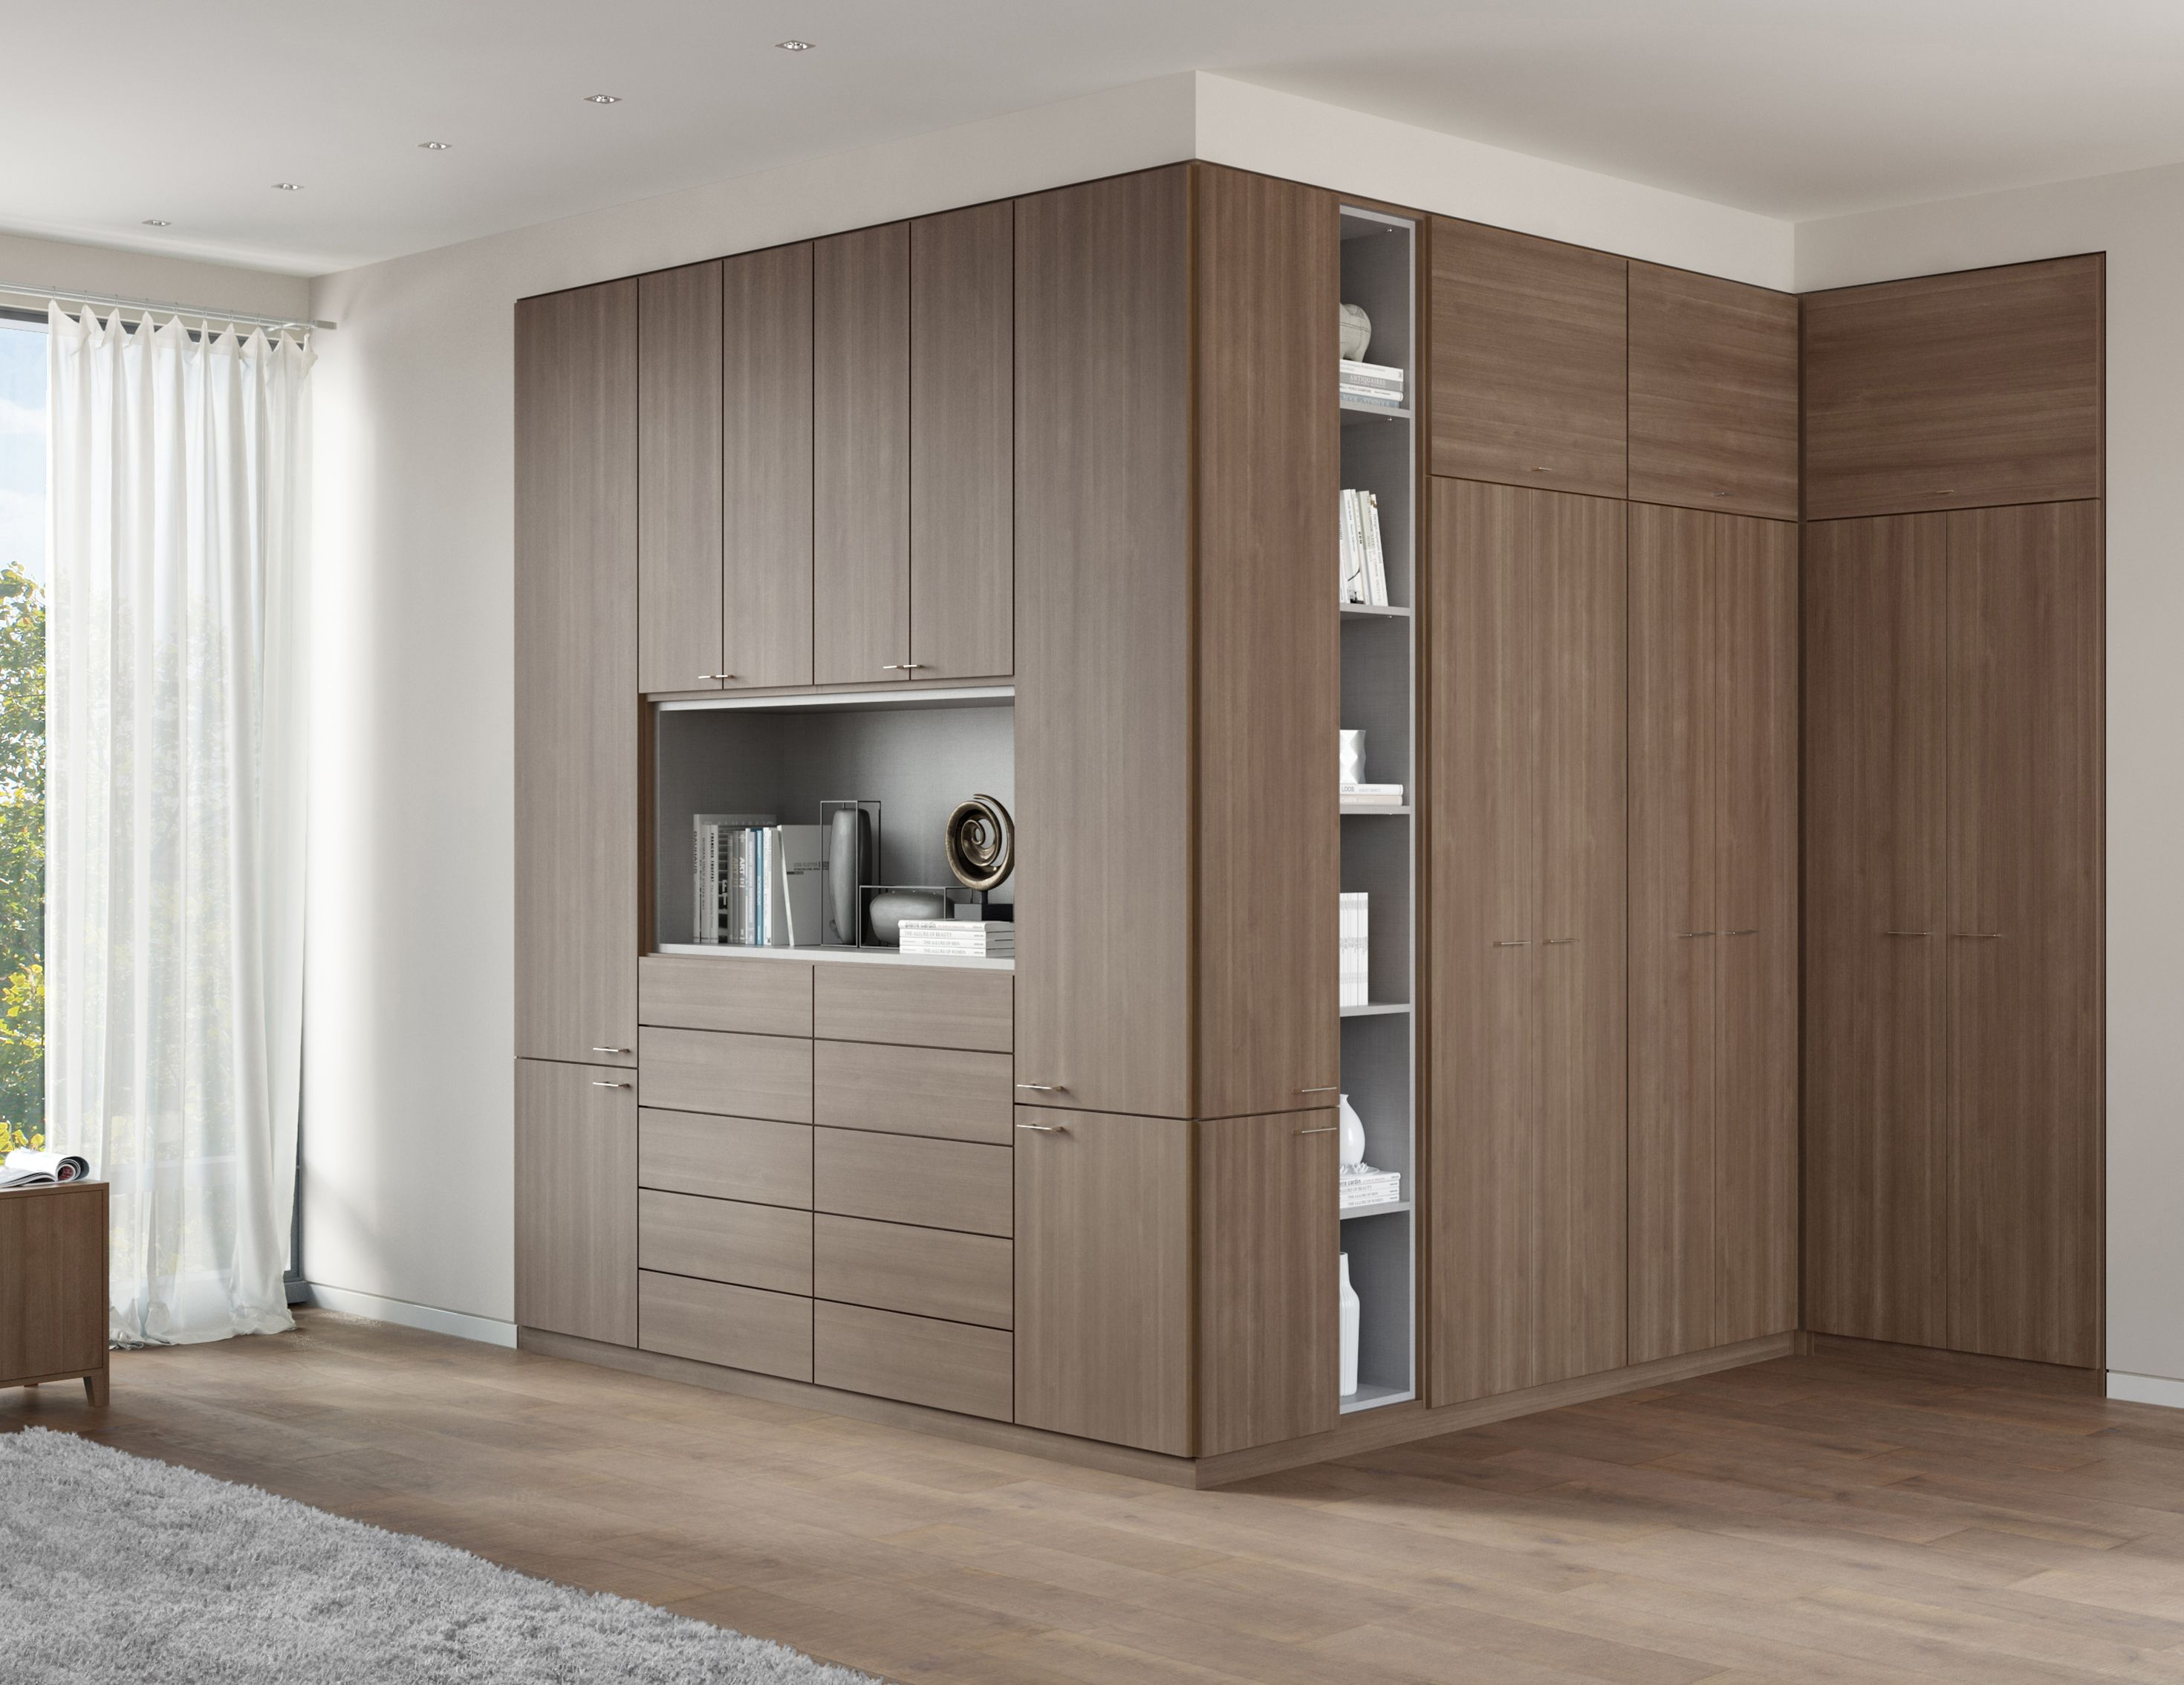 For Our Custom Cabinetry And Storage Systems, We Proudly Offer A Range Of  Finishes. See What We Offer At California Closets Today!